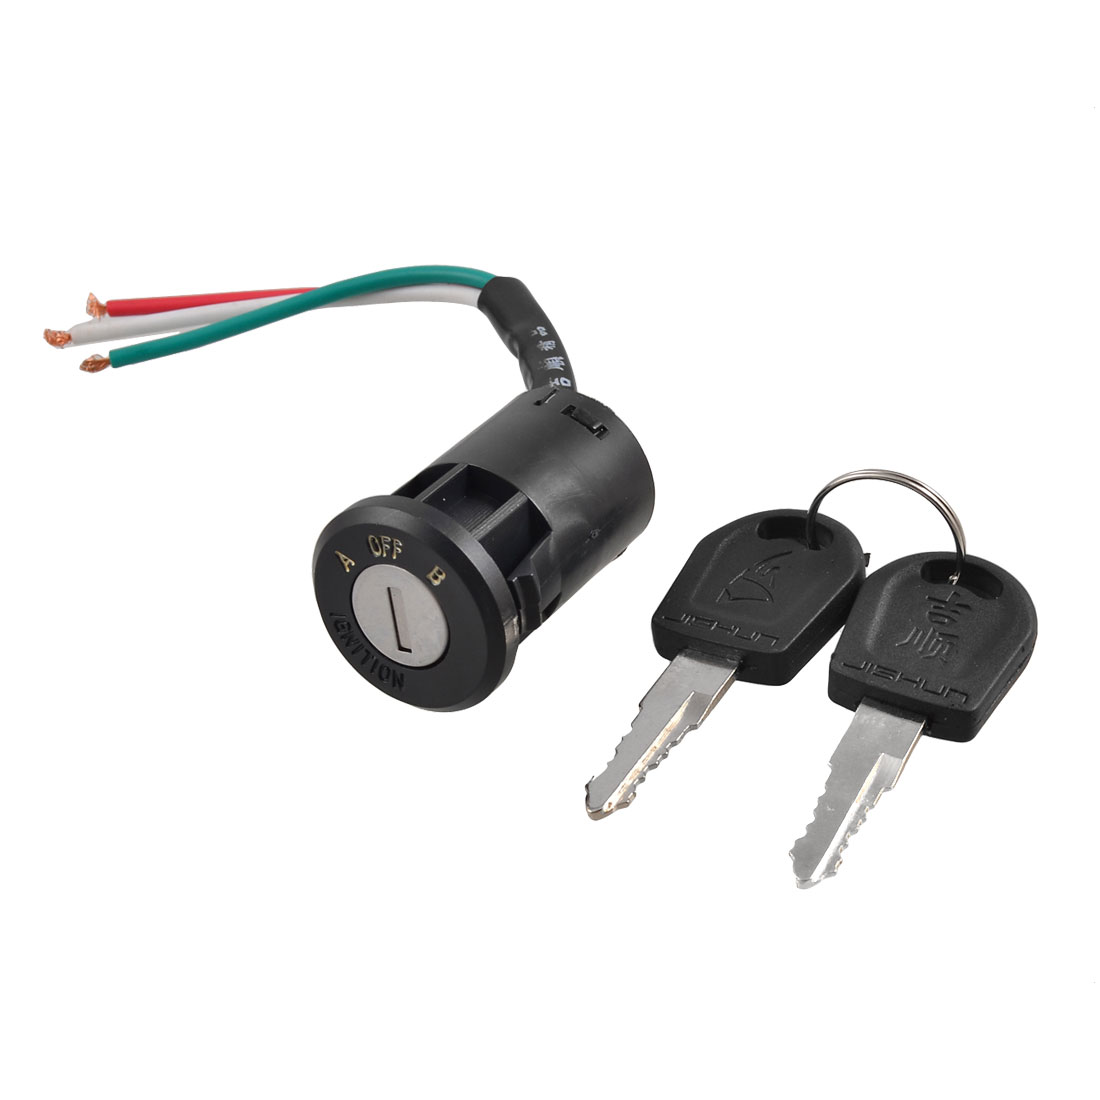 Electric Bike Ignition Switch Black Plastic Lock Keys Set 3 in 1